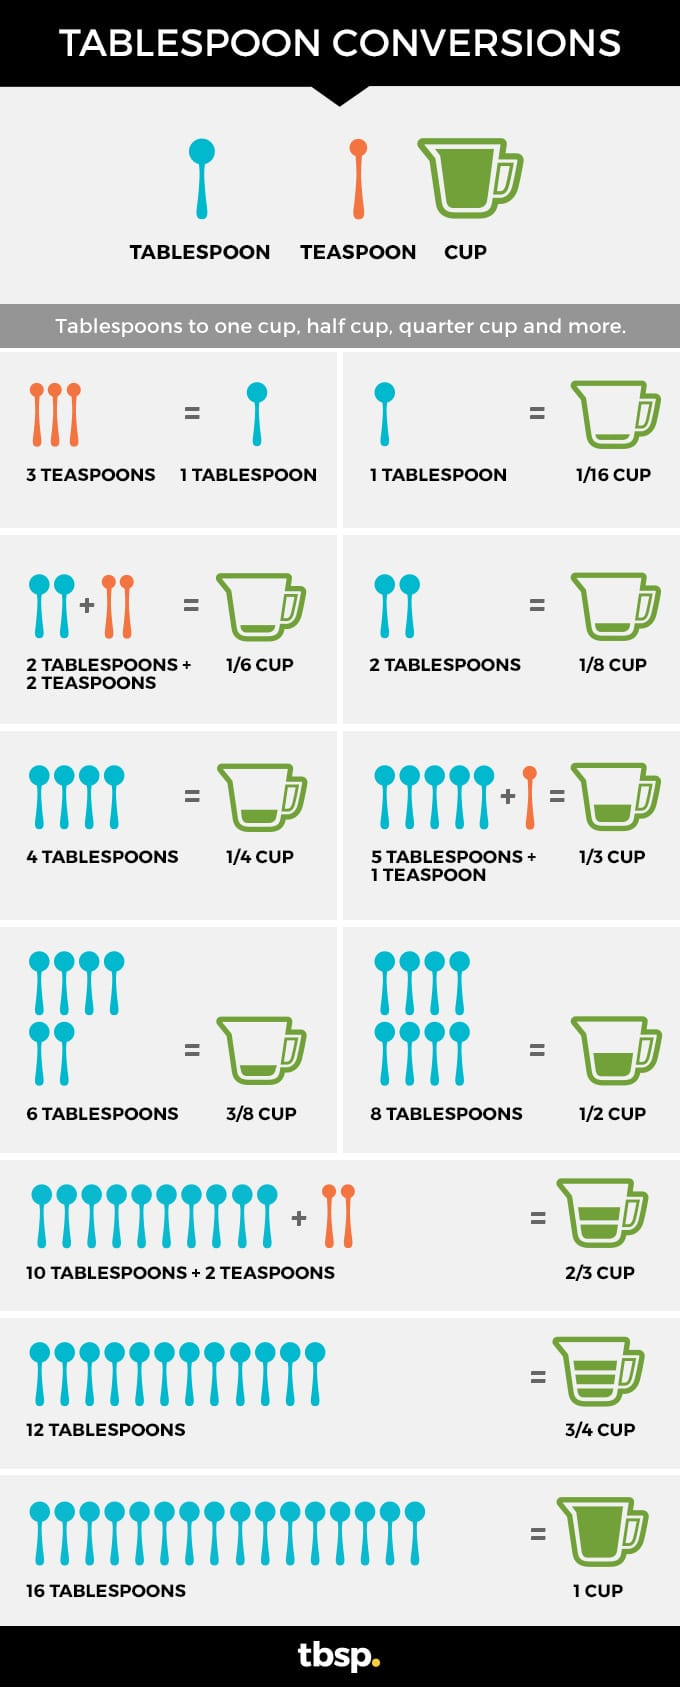 Tablespoon conversions to cups